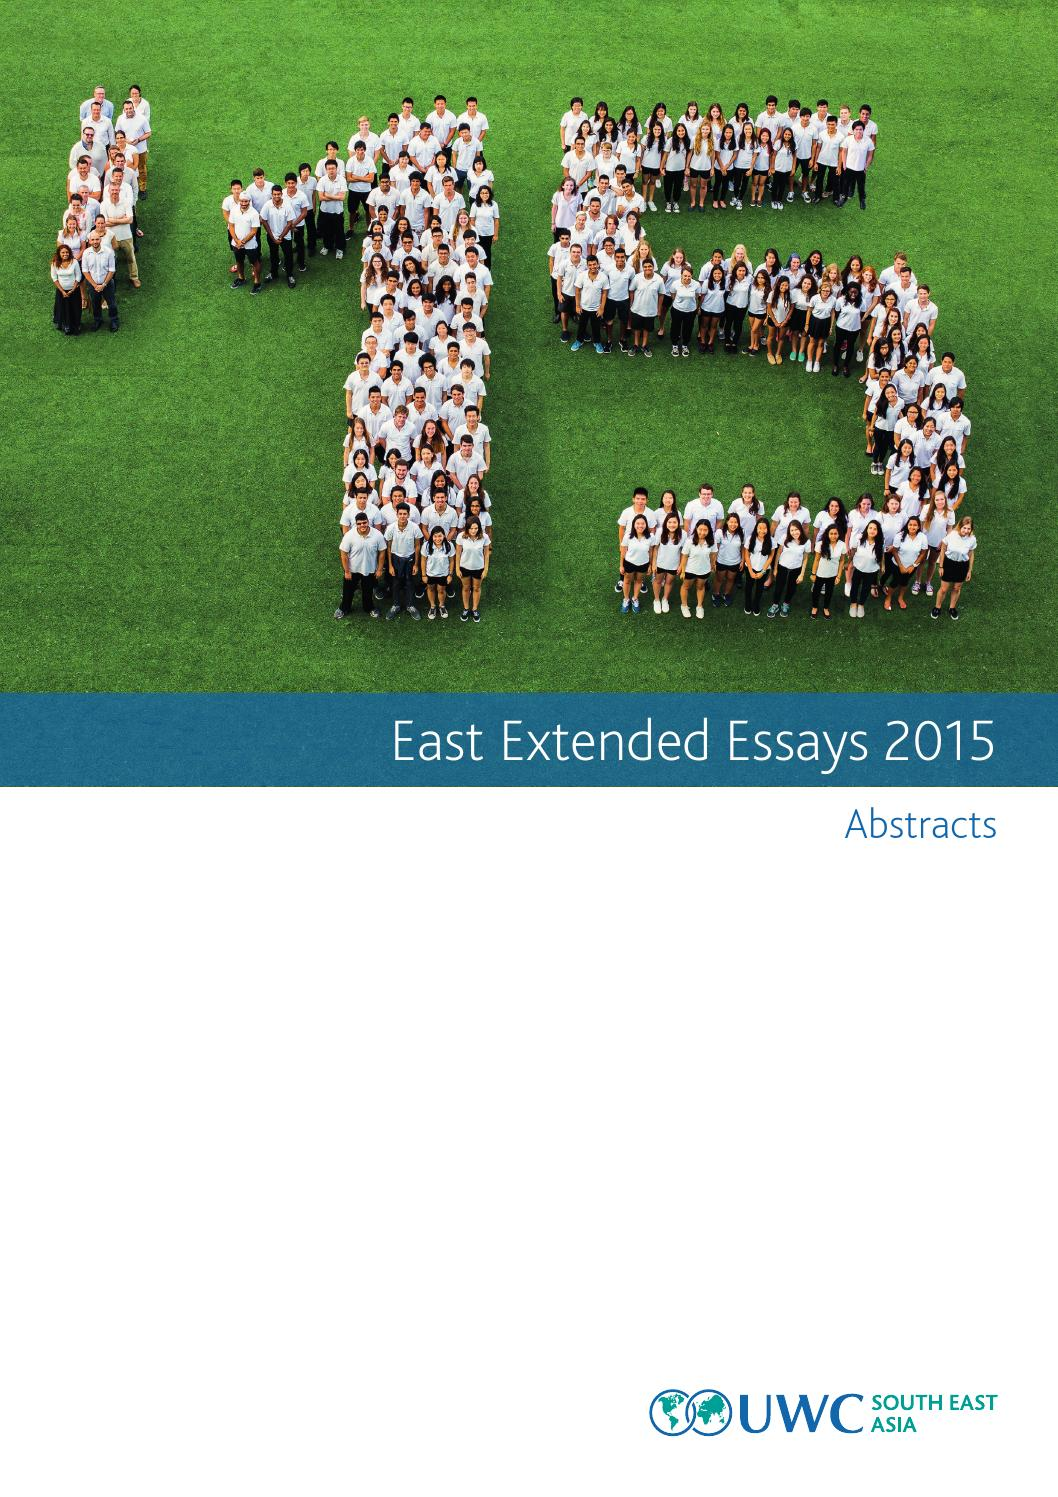 145com 1415 east extended essays web by uwcsea